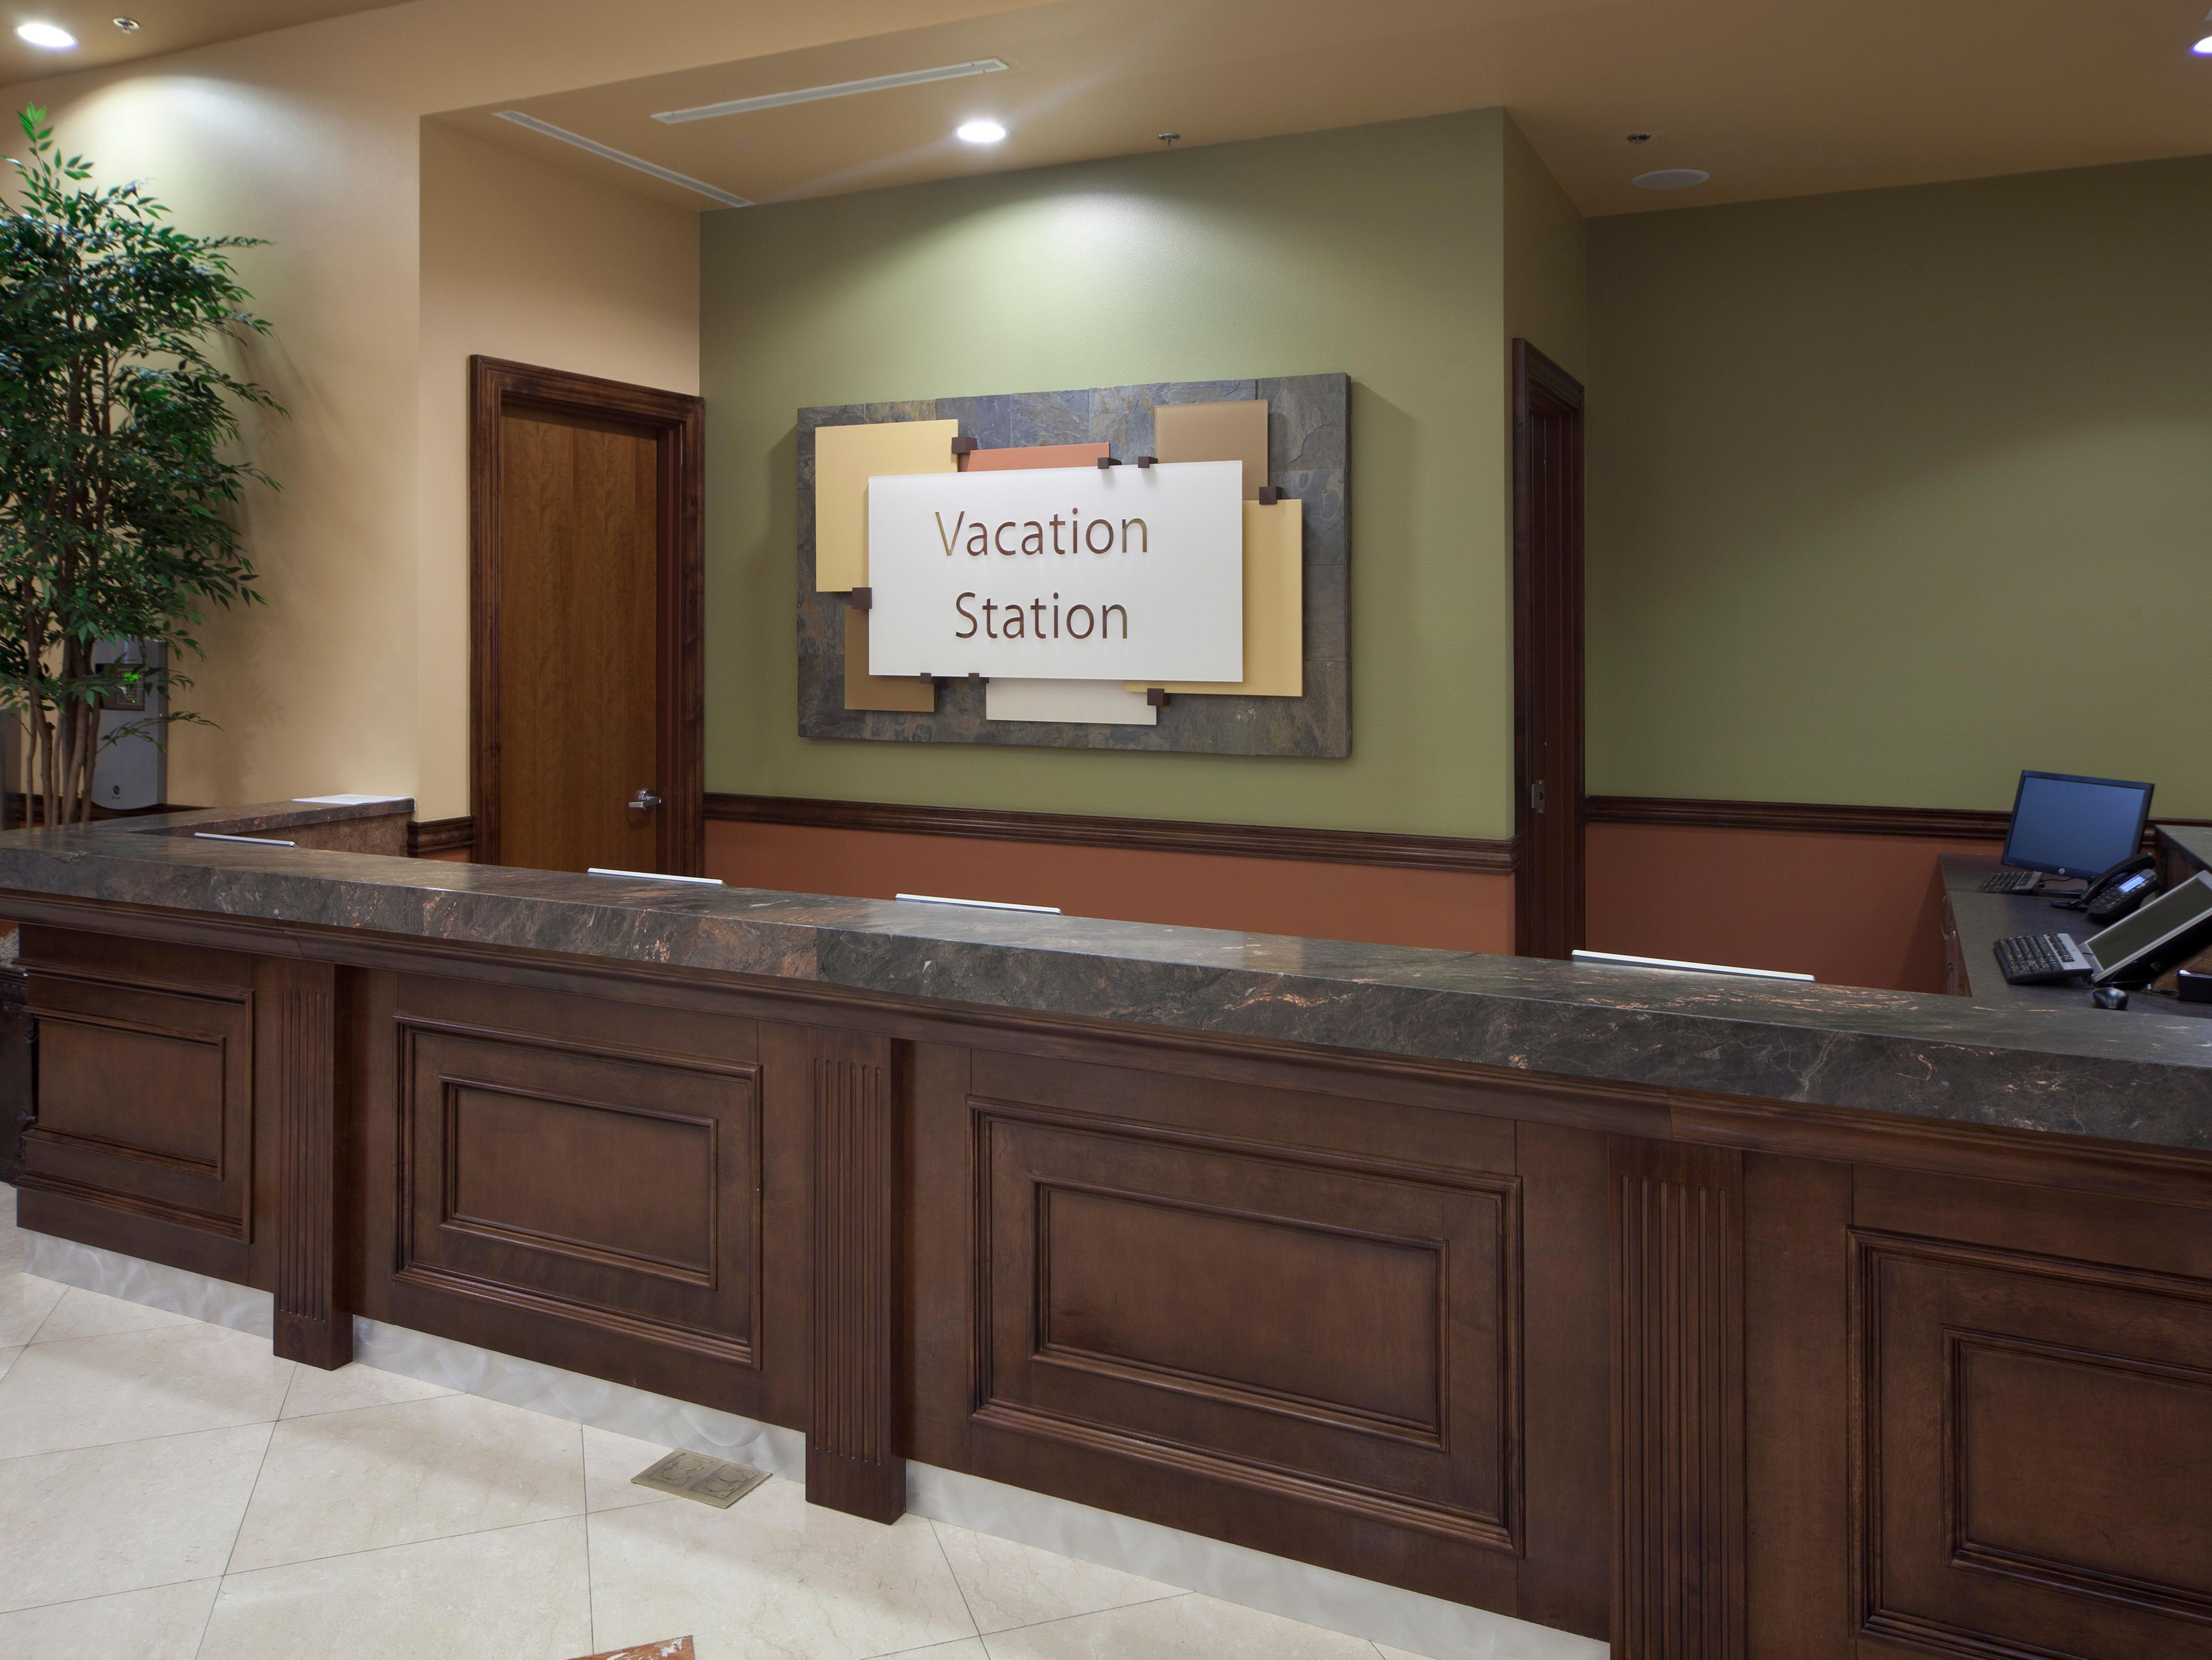 Front desk for guest check-in located in the lobby